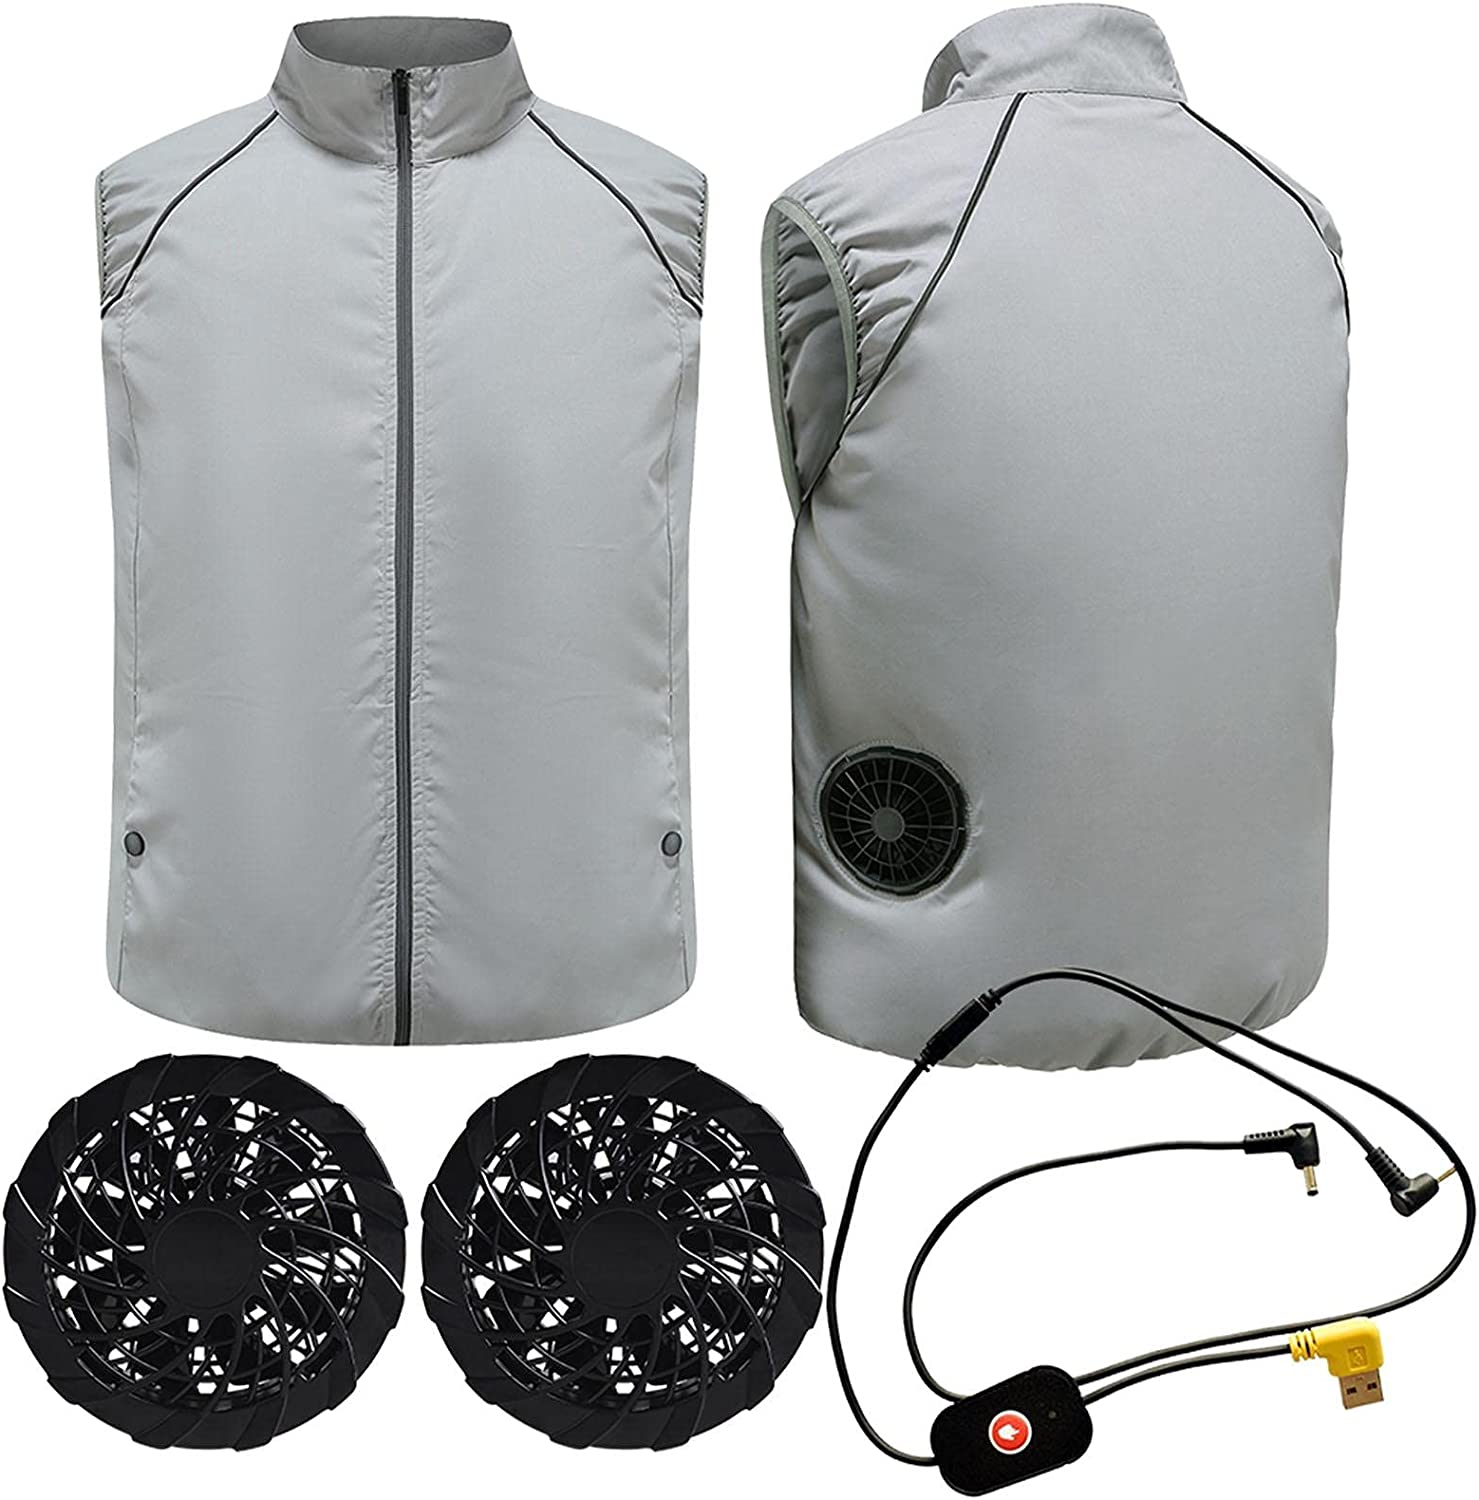 Xiaoyaoyou Cooling Fan Jacket Air Smart Air-Co Mail order cheap Vest Max 72% OFF Conditioned